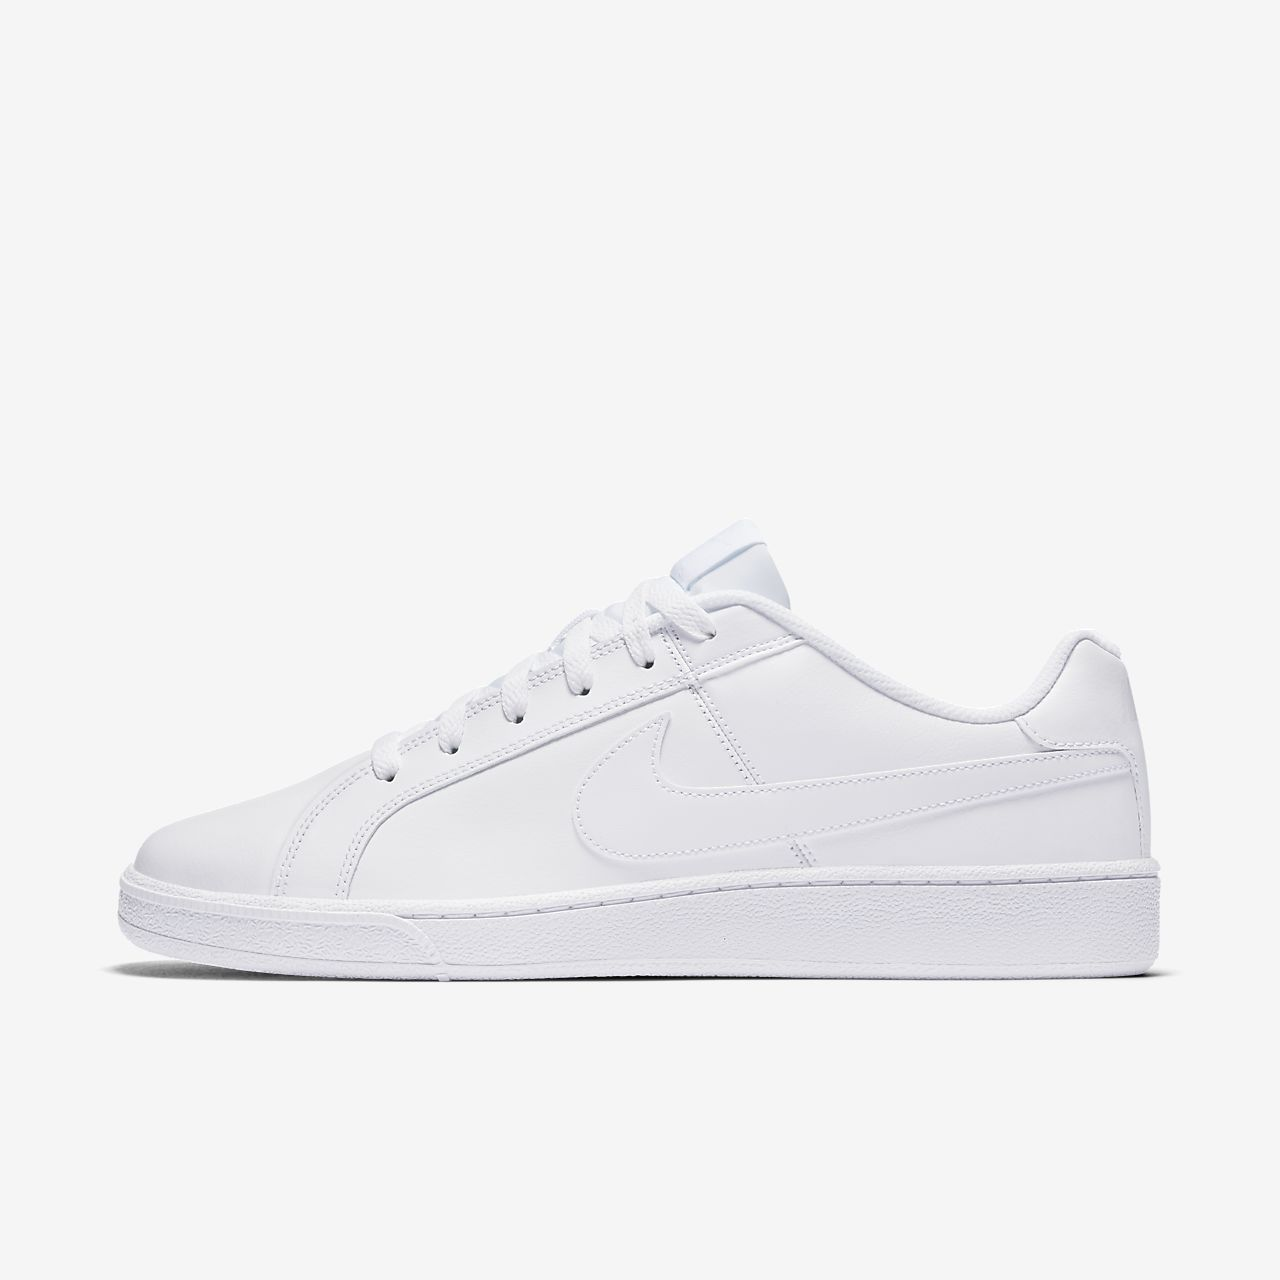 Homme Chaussure Nike Royale Pour Court QBrdxsthCo